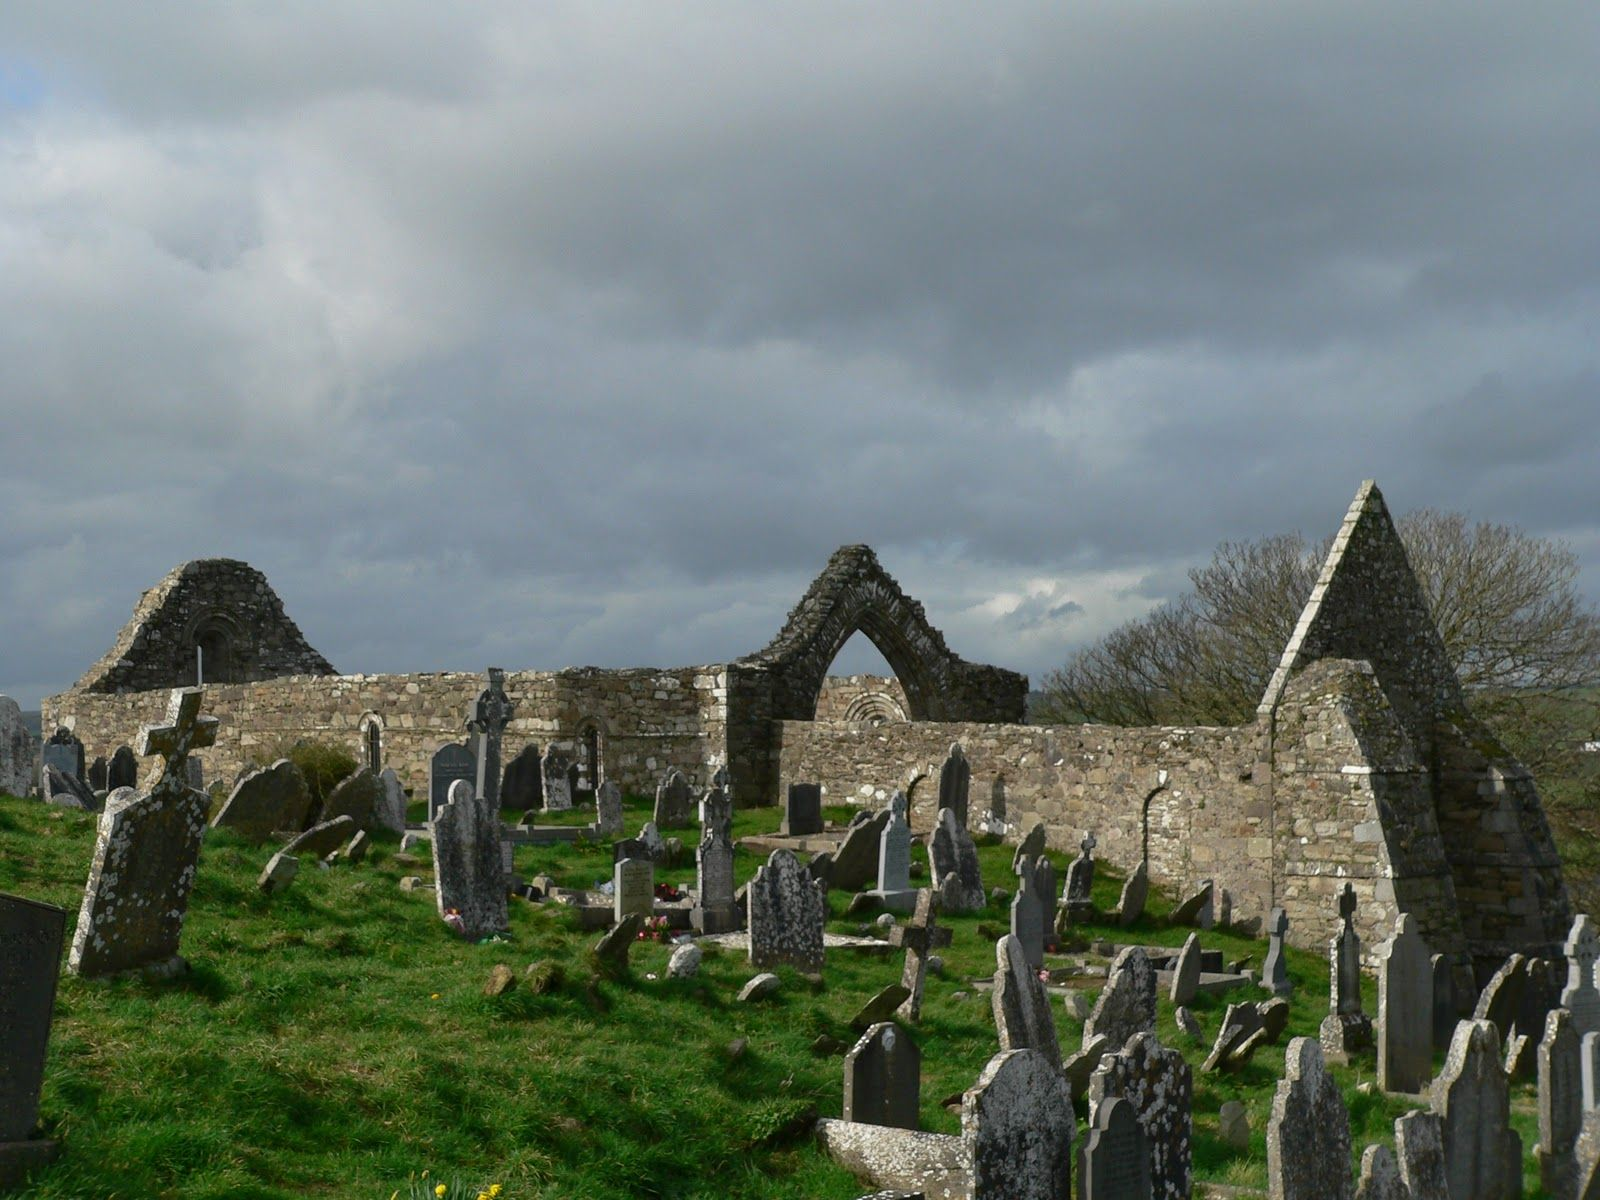 ardmore ireland places mystical sacred thin declan christian community earth waterford irish ancient northern beyond cork village county england mystic